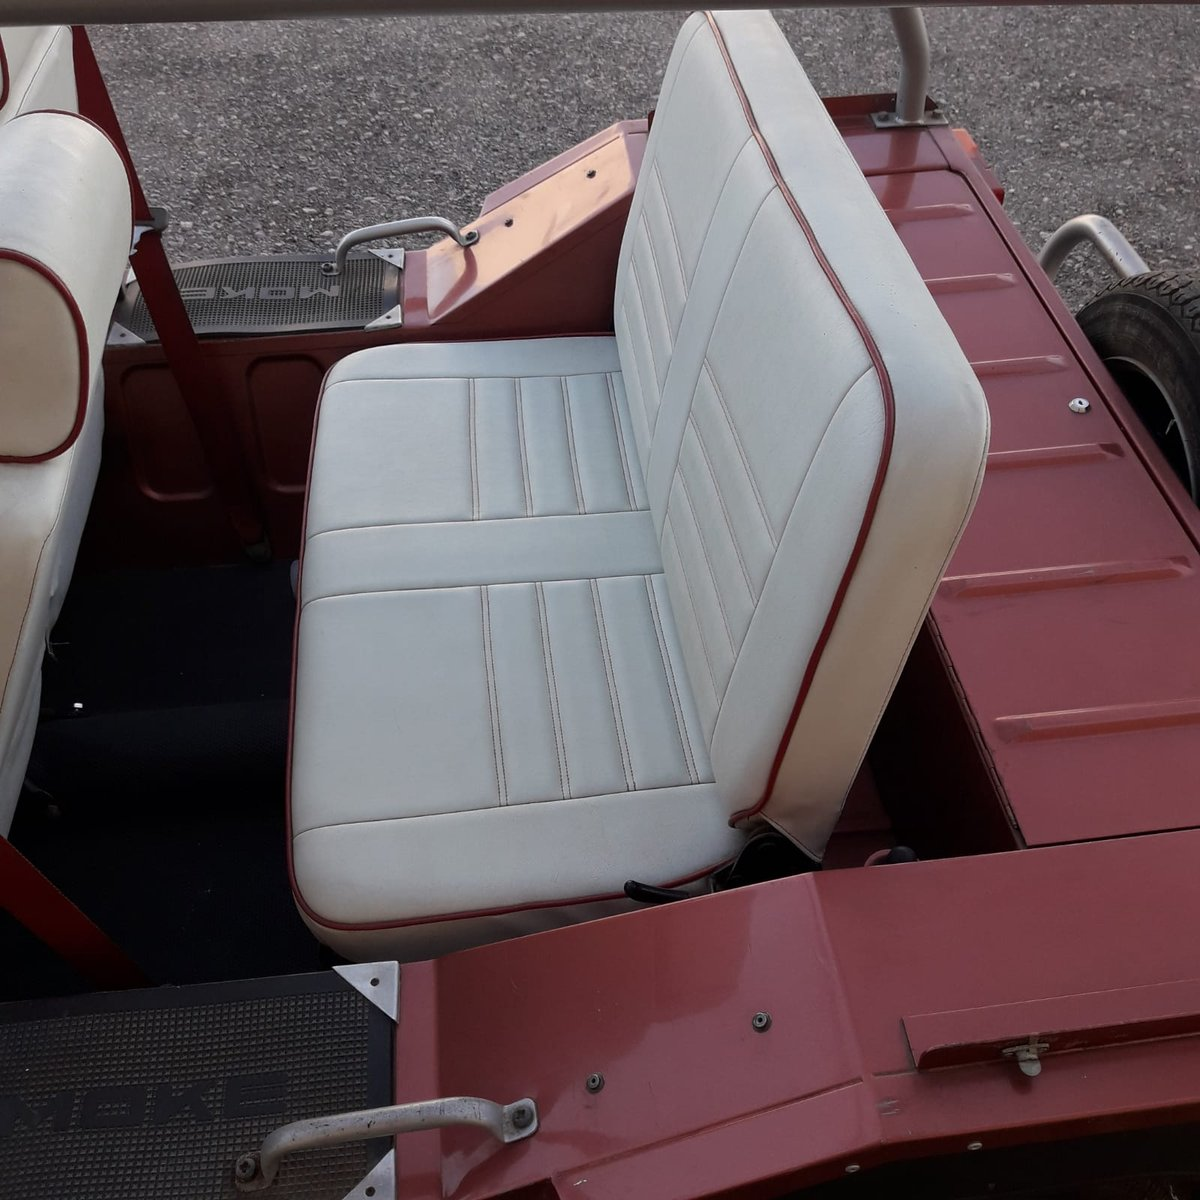 1988 Austin Rover Mini Moke just 35.000km. since new ! For Sale (picture 4 of 6)